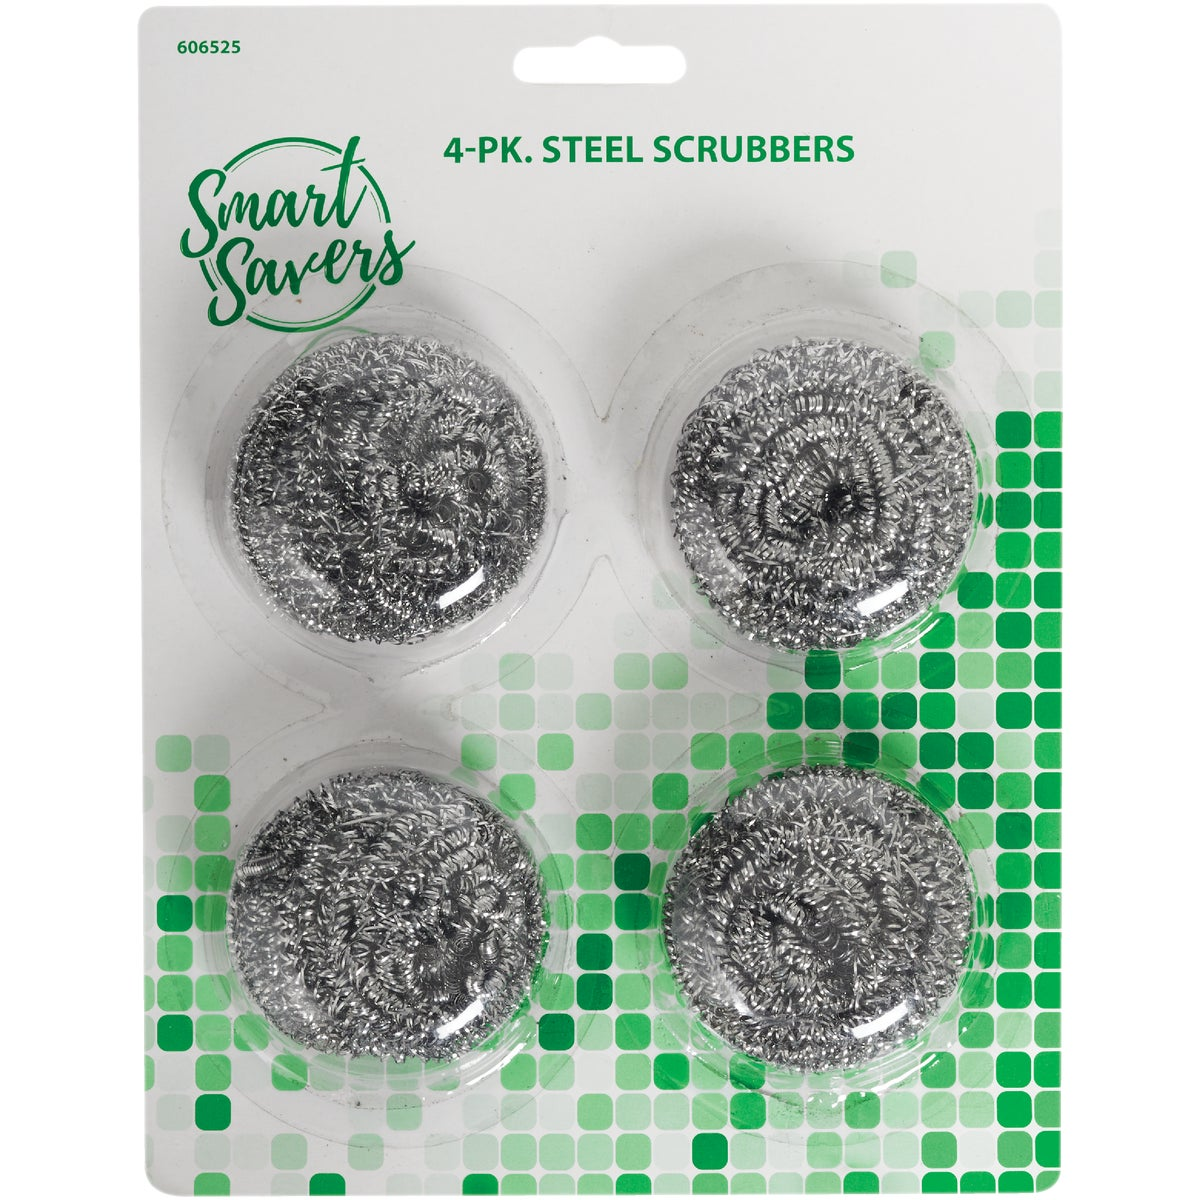 STEEL SCRUBBER - HV264 by Do it Best